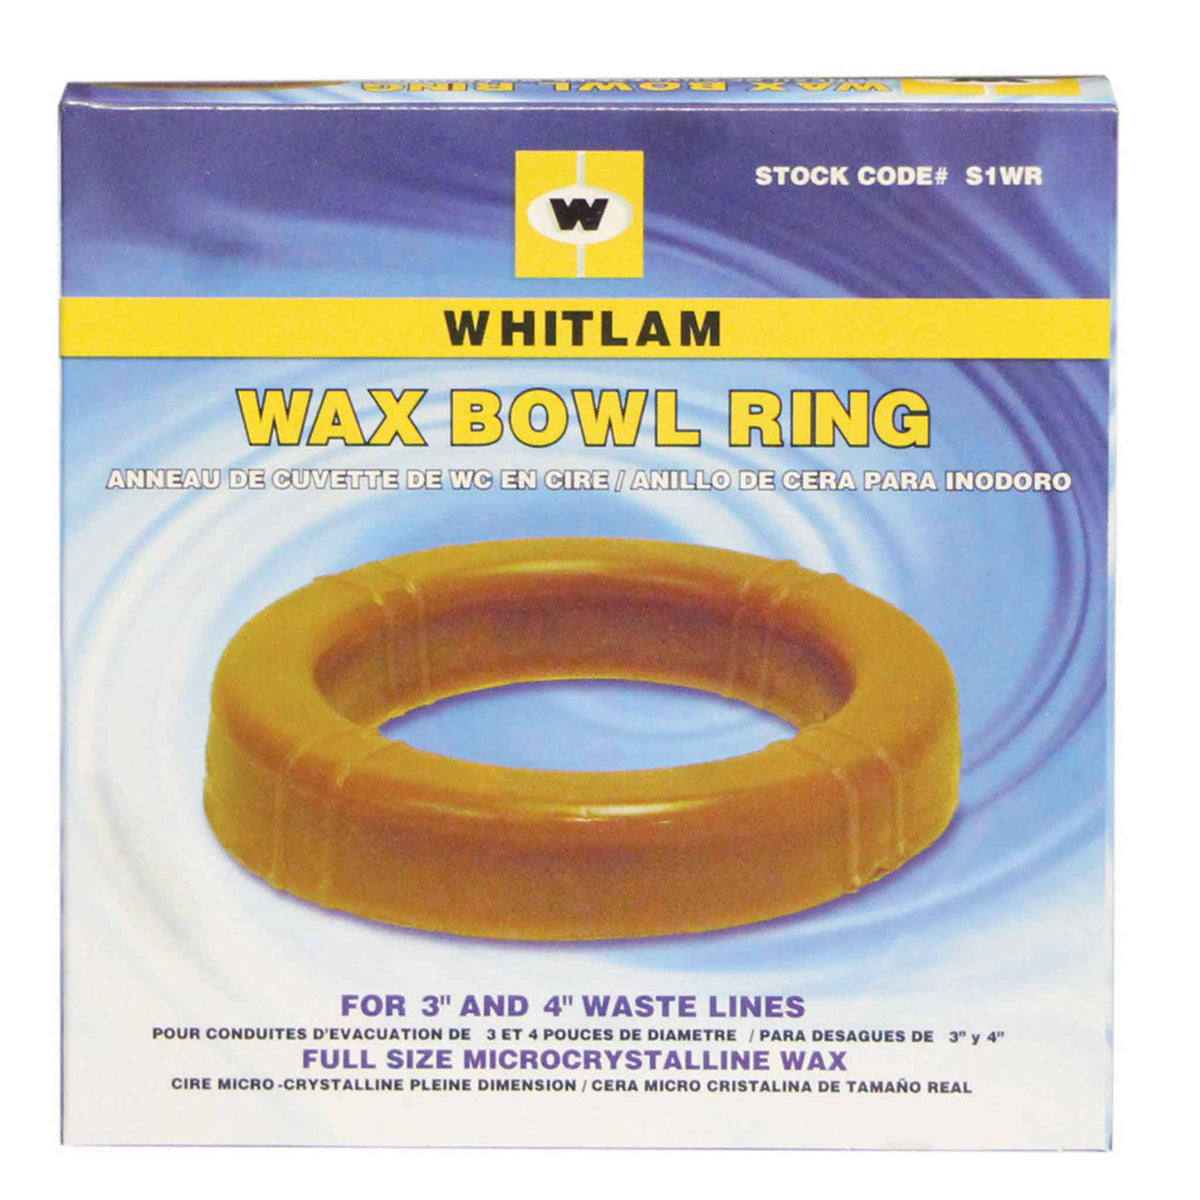 REGULAR WAX RING